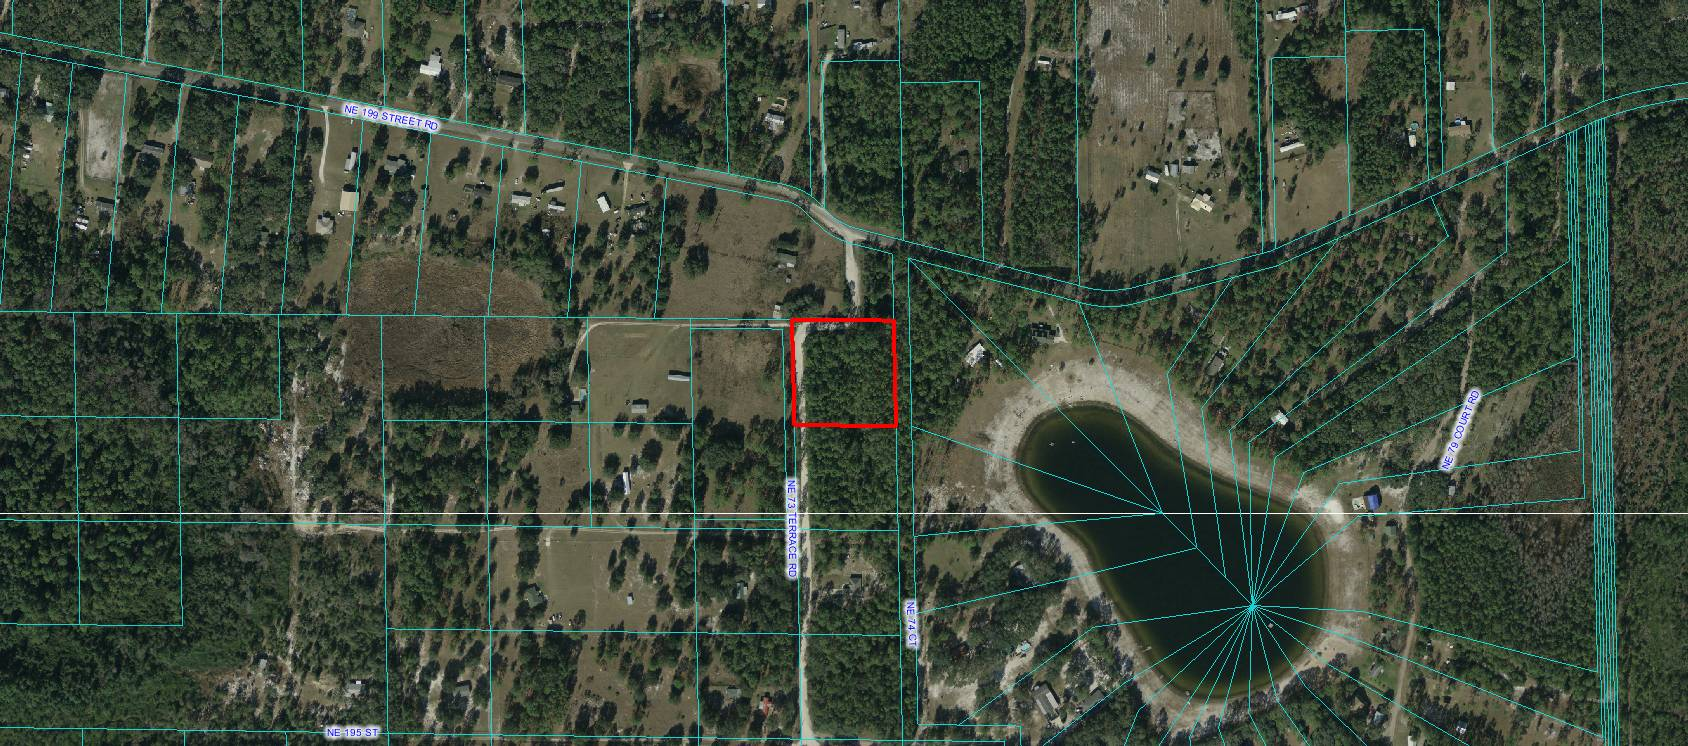 Acres In Citra Florida For Sale Cheapest LOTs In Area  LOTS - Florida map for sale